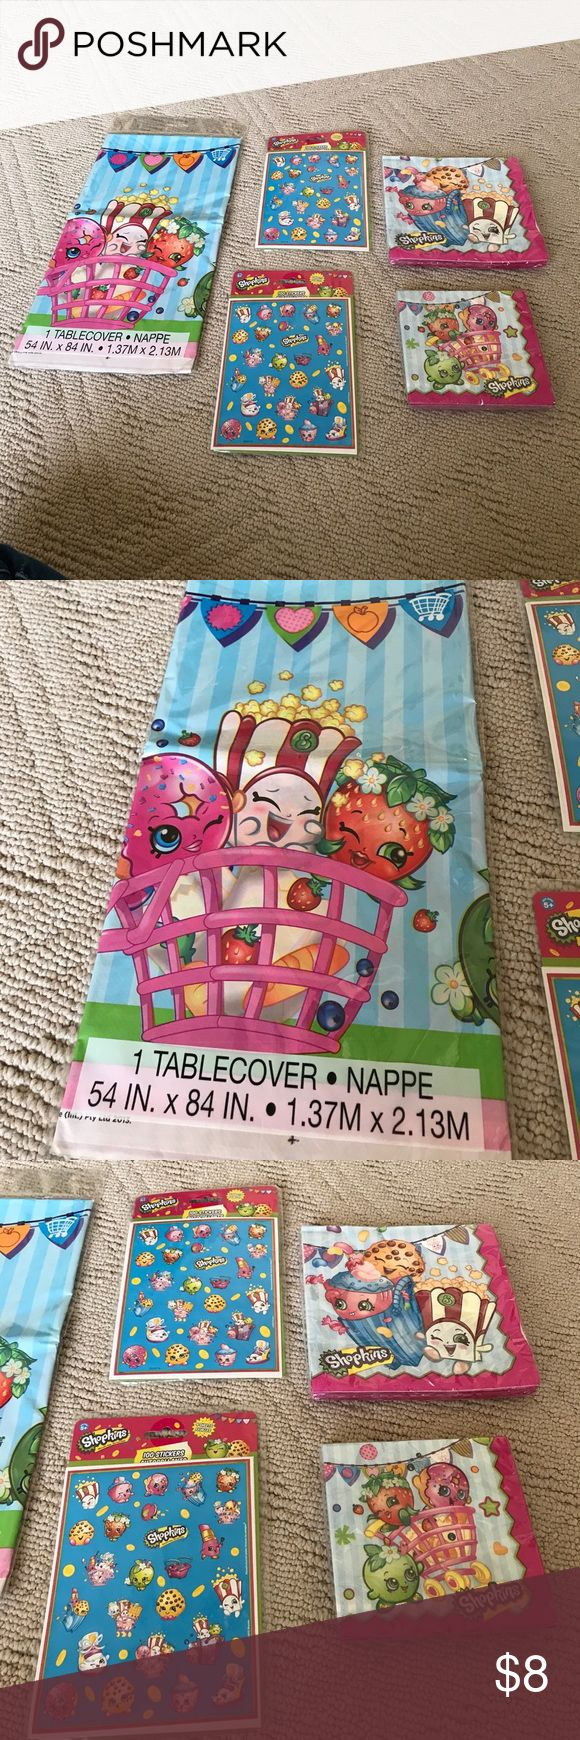 NWT Shopkin bday bundle tablecloth napkins sticker These are new shop kin birthday items not used at our party we have one table cover to 100 pack sticker sets one large napkins set that is 16 count and one small napkins that that is 16 count also altogether new in package perfect for your shopkin party shopkin Accessories